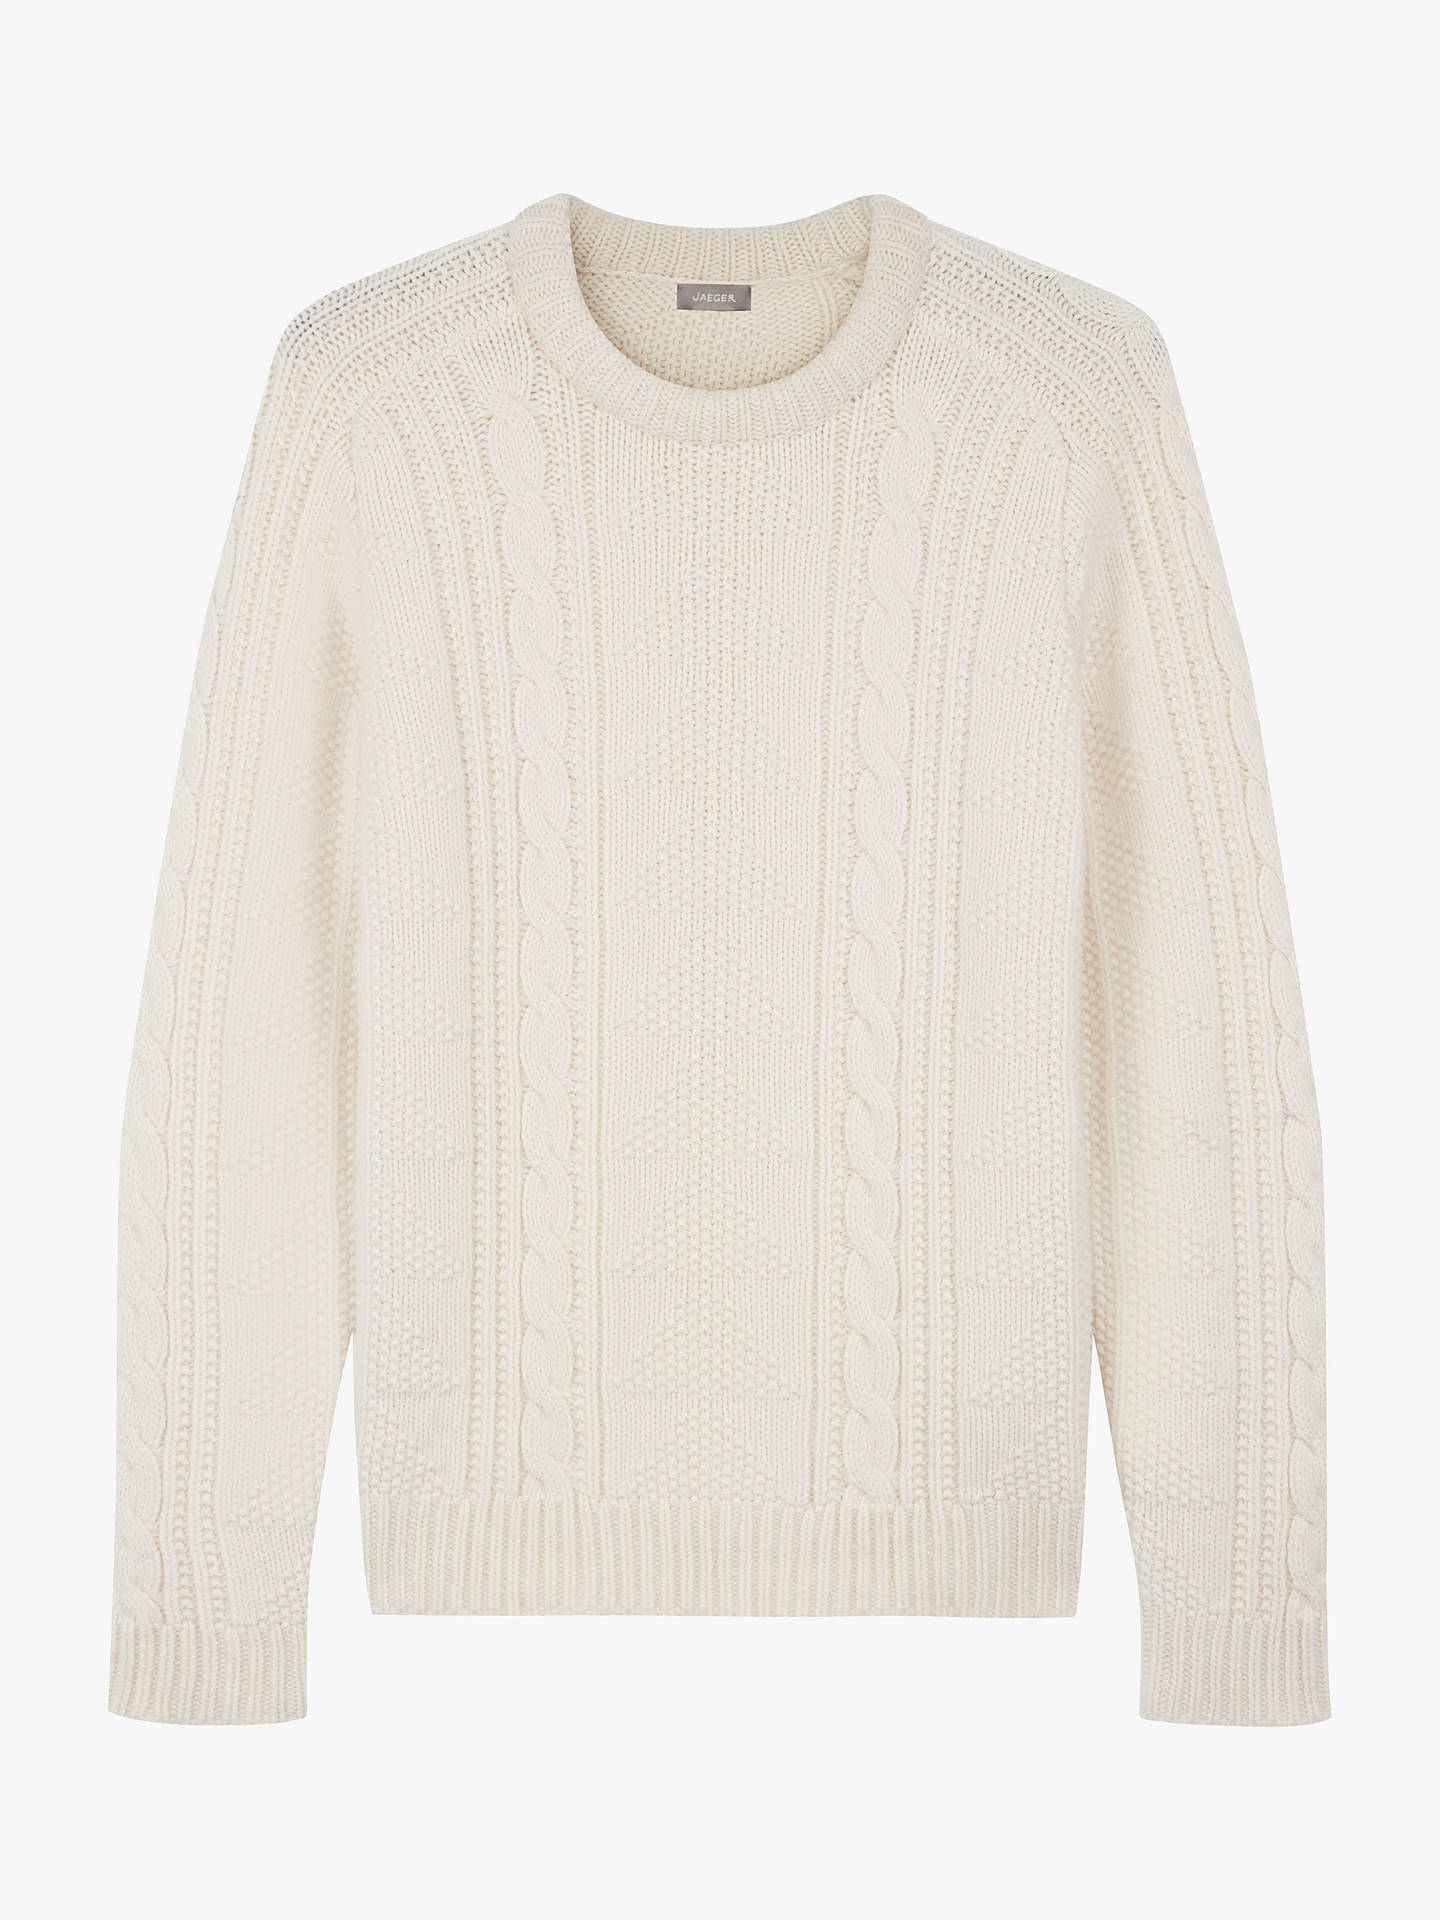 BuyJaeger Cable Knit Merino Wool Jumper, Ivory, S Online at johnlewis.com